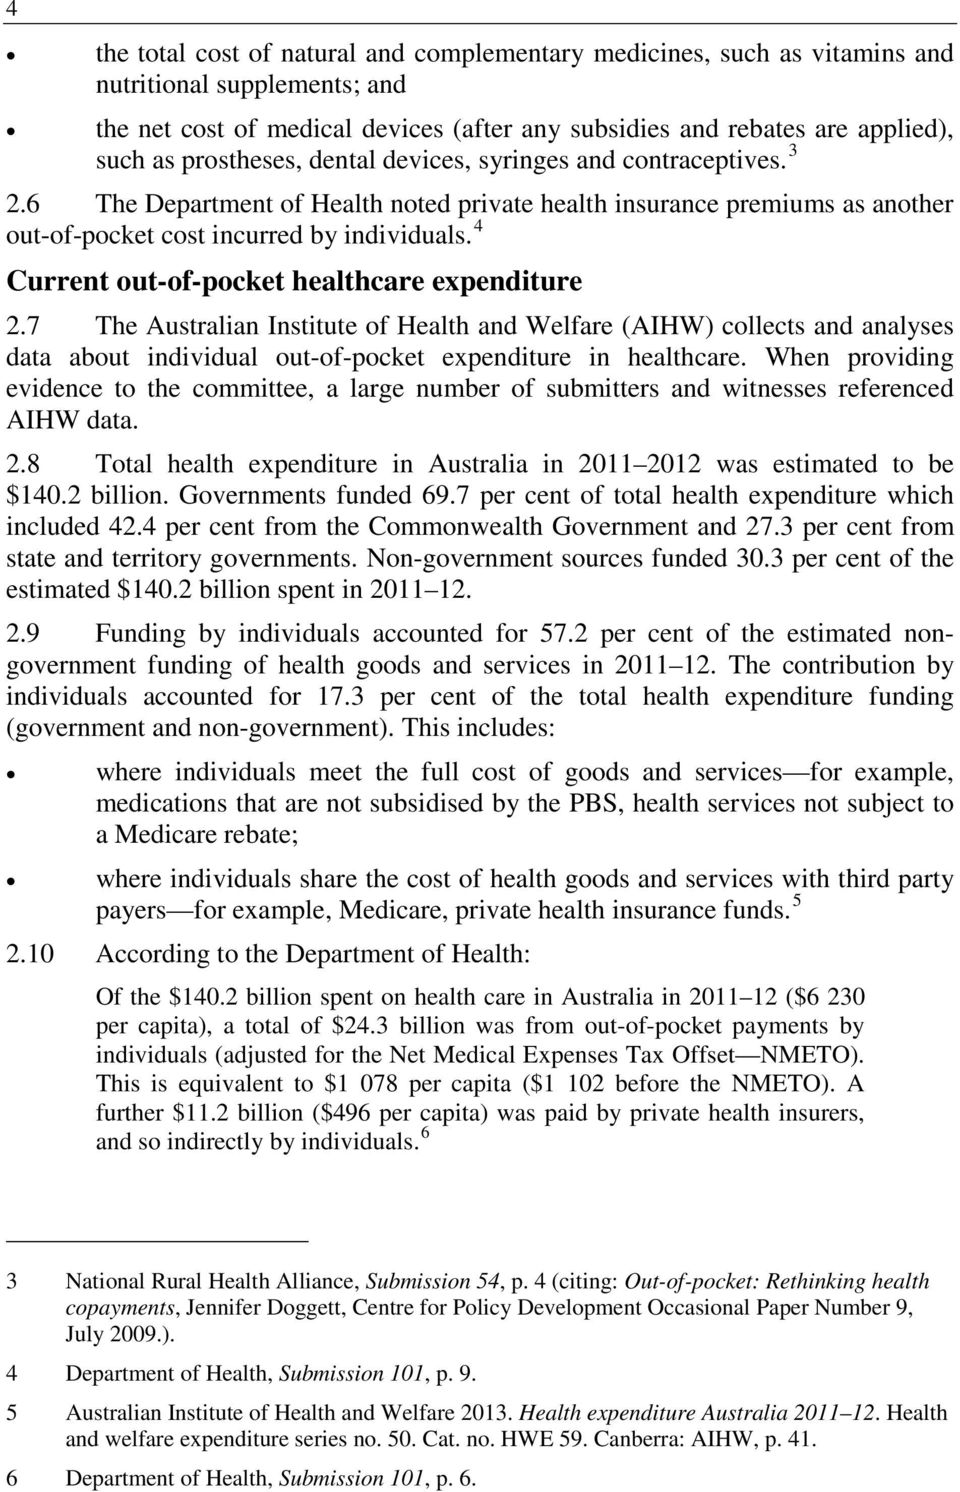 4 Current out-of-pocket healthcare expenditure 2.7 The Australian Institute of Health and Welfare (AIHW) collects and analyses data about individual out-of-pocket expenditure in healthcare.